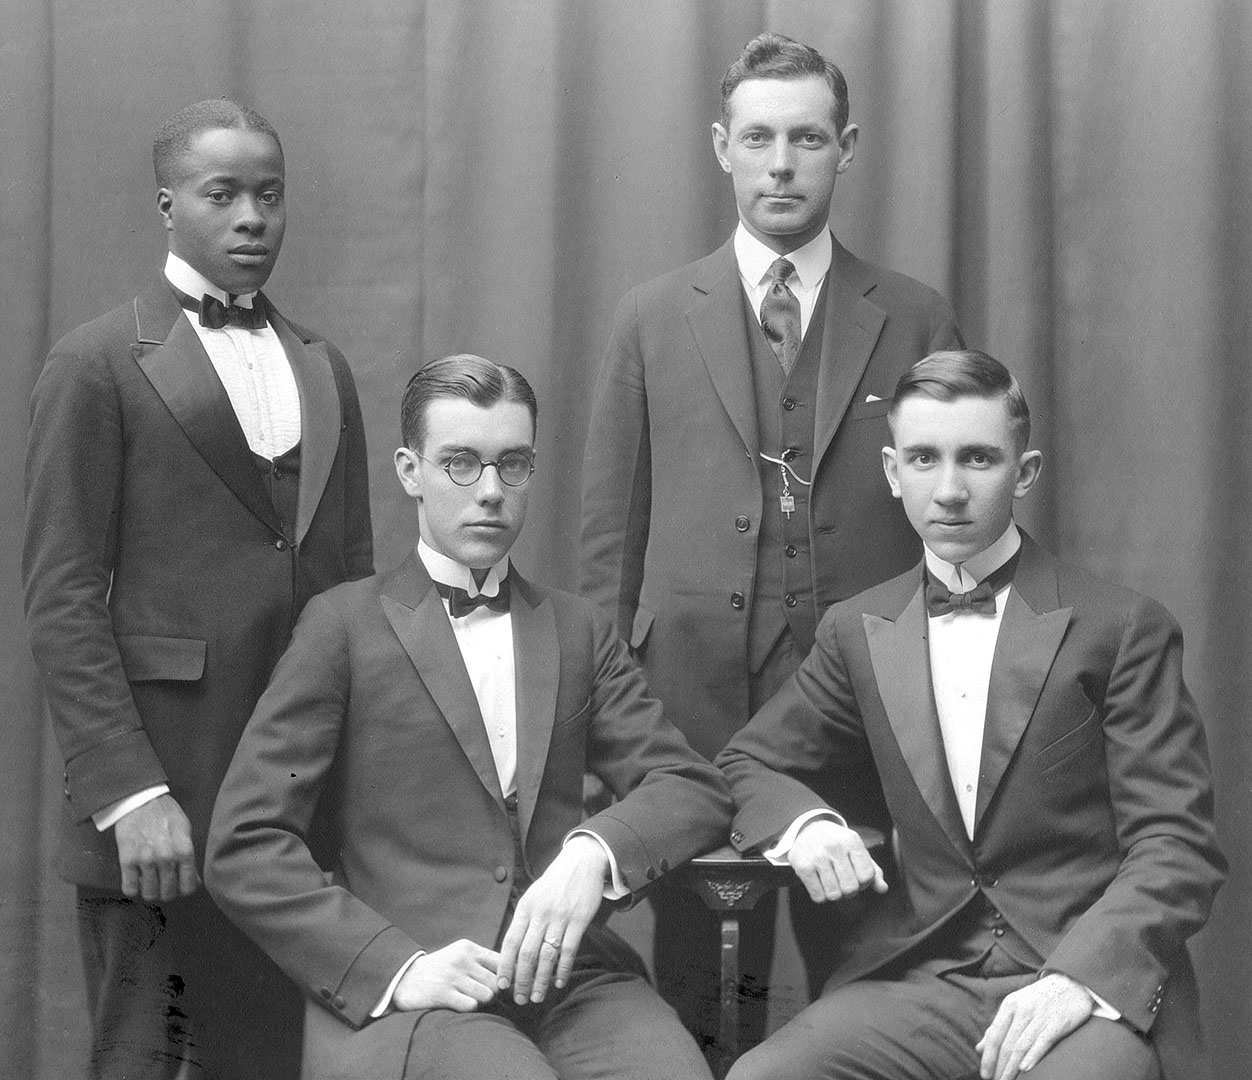 Debaters of 1923, the era of the first alumni fund. From left, Theodore Pinckney '23, later an orthopedic surgeon; Erwin Canham '25, Rhodes Scholar and editor of the Christian Science Monitor, Professor Craig Baird, and William Young '24, later head of elementary education in New York state. Photograph courtesy of Muskie Archives and Special Collections Library.